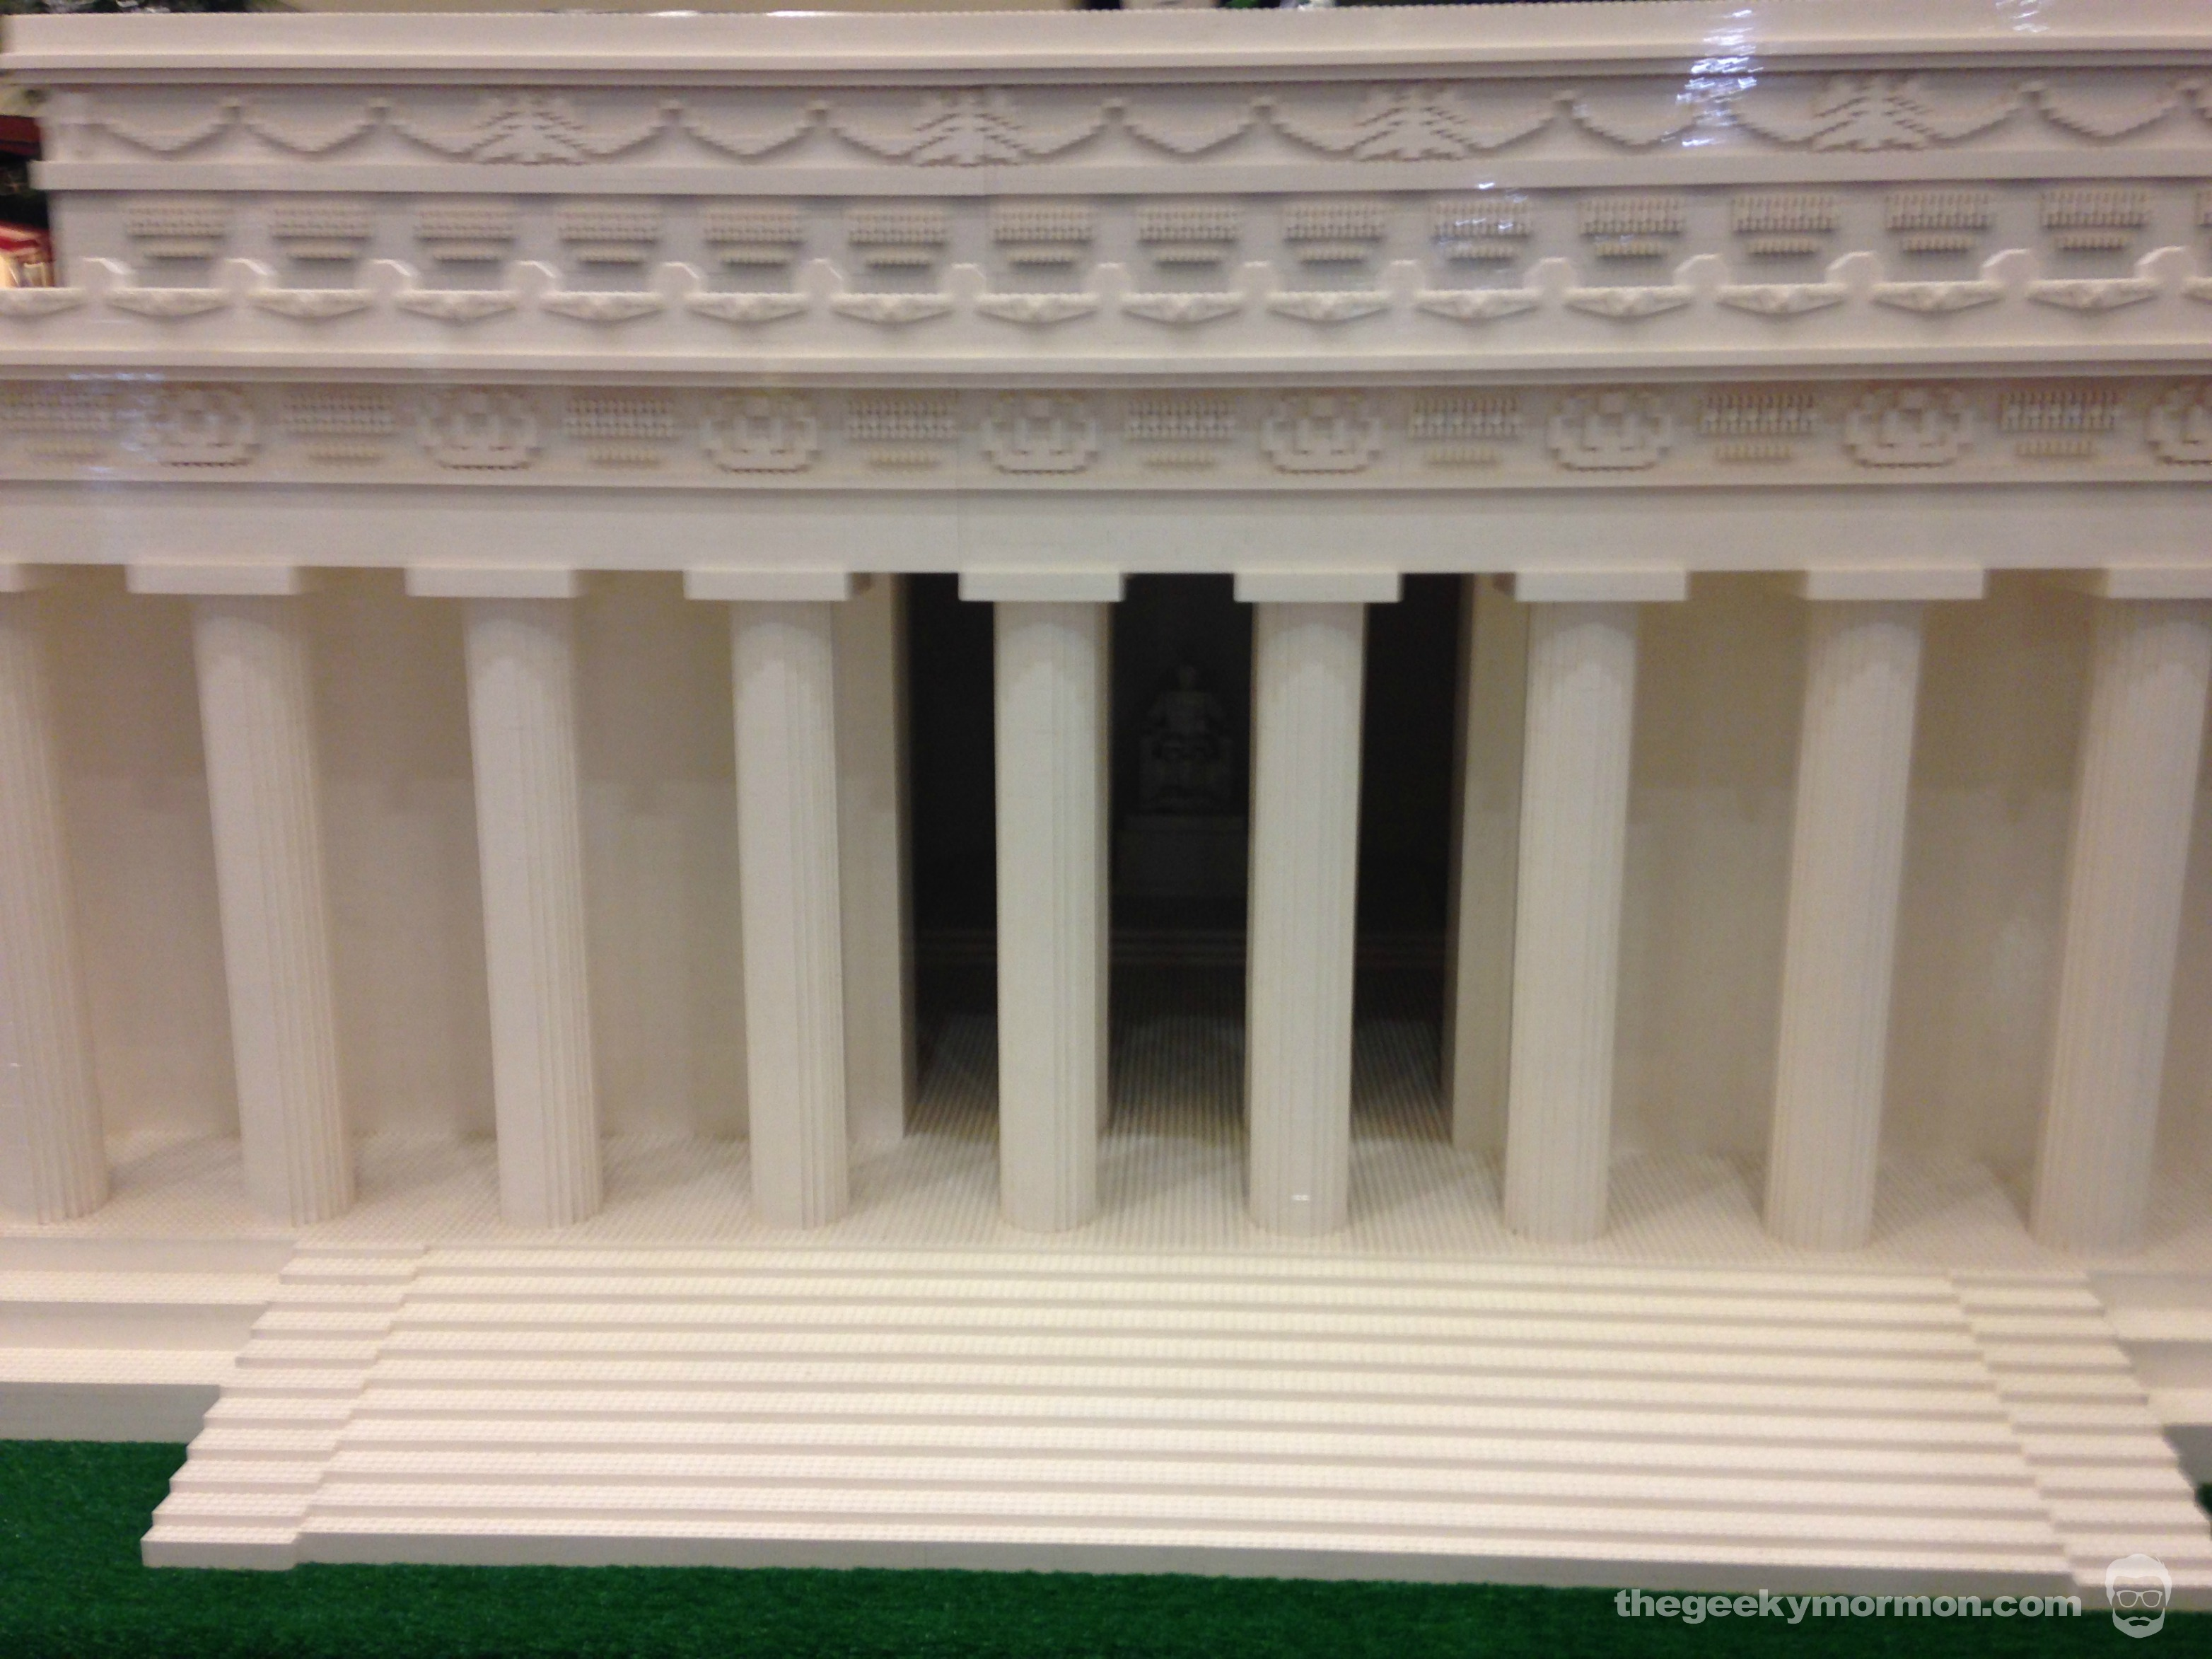 lego army lincoln images memorial u on dimensions pholder made that